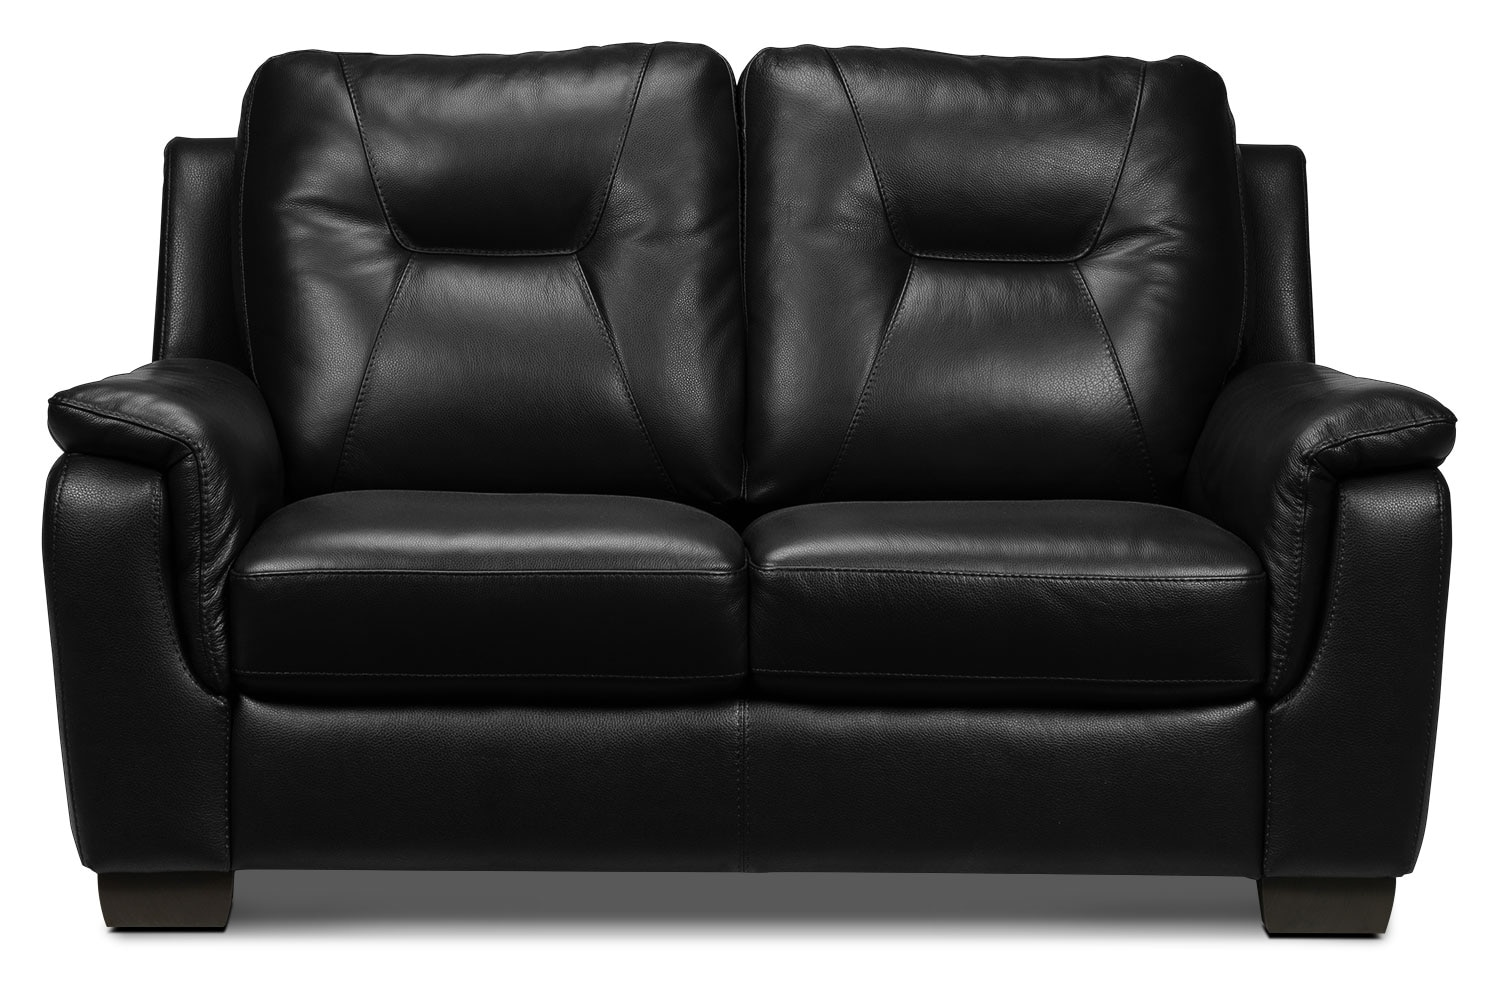 Living Room Furniture - Dalia Loveseat - Black